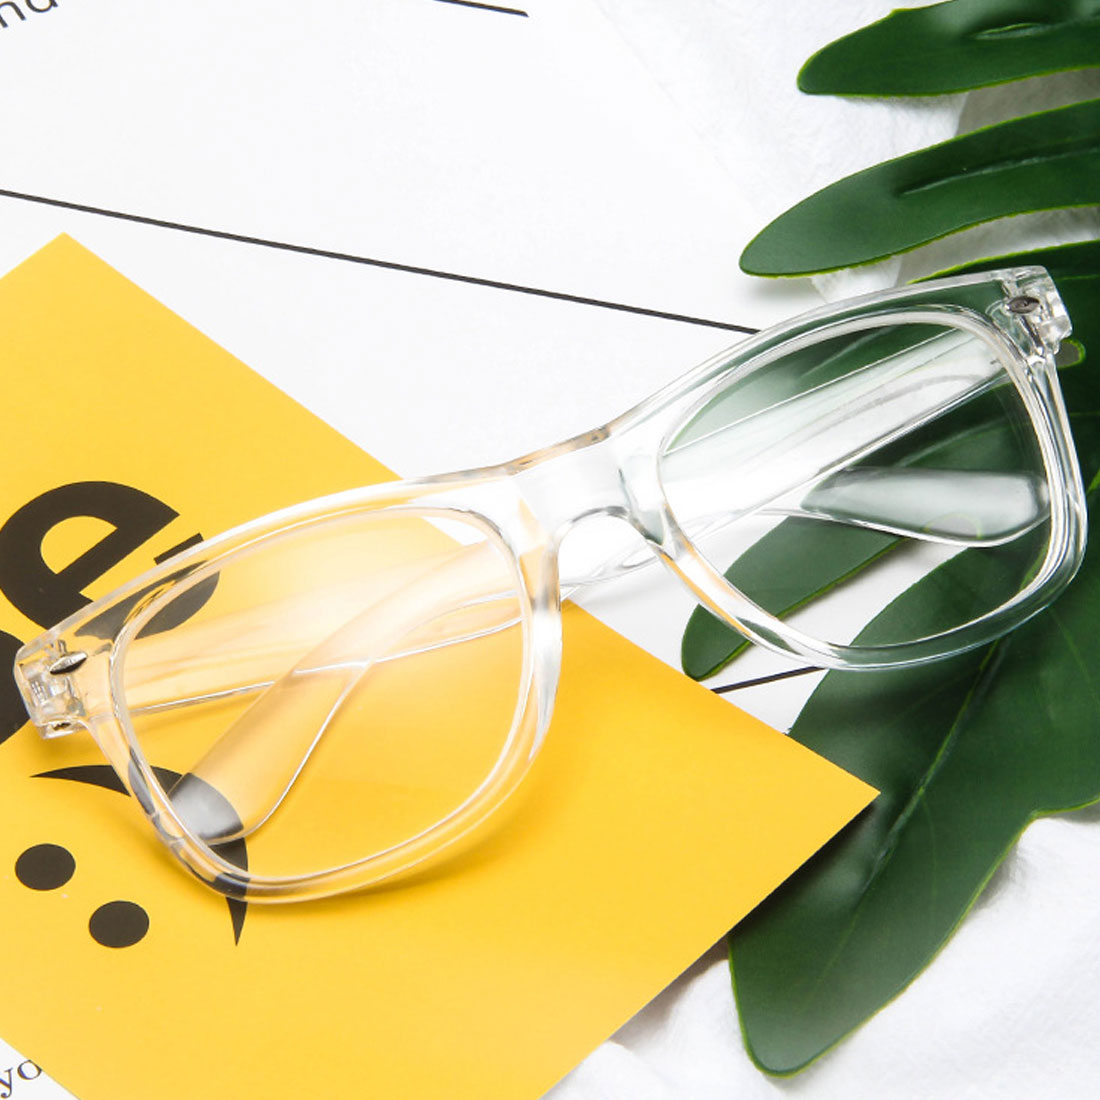 Finished Myopia Glasses Transparent White Plastic Frame Eyewear Diopters 0 -0.5 -1 -1.5 -2 -2.5 -3 -3.5 -4 -4.5 -5 -5.5 -6